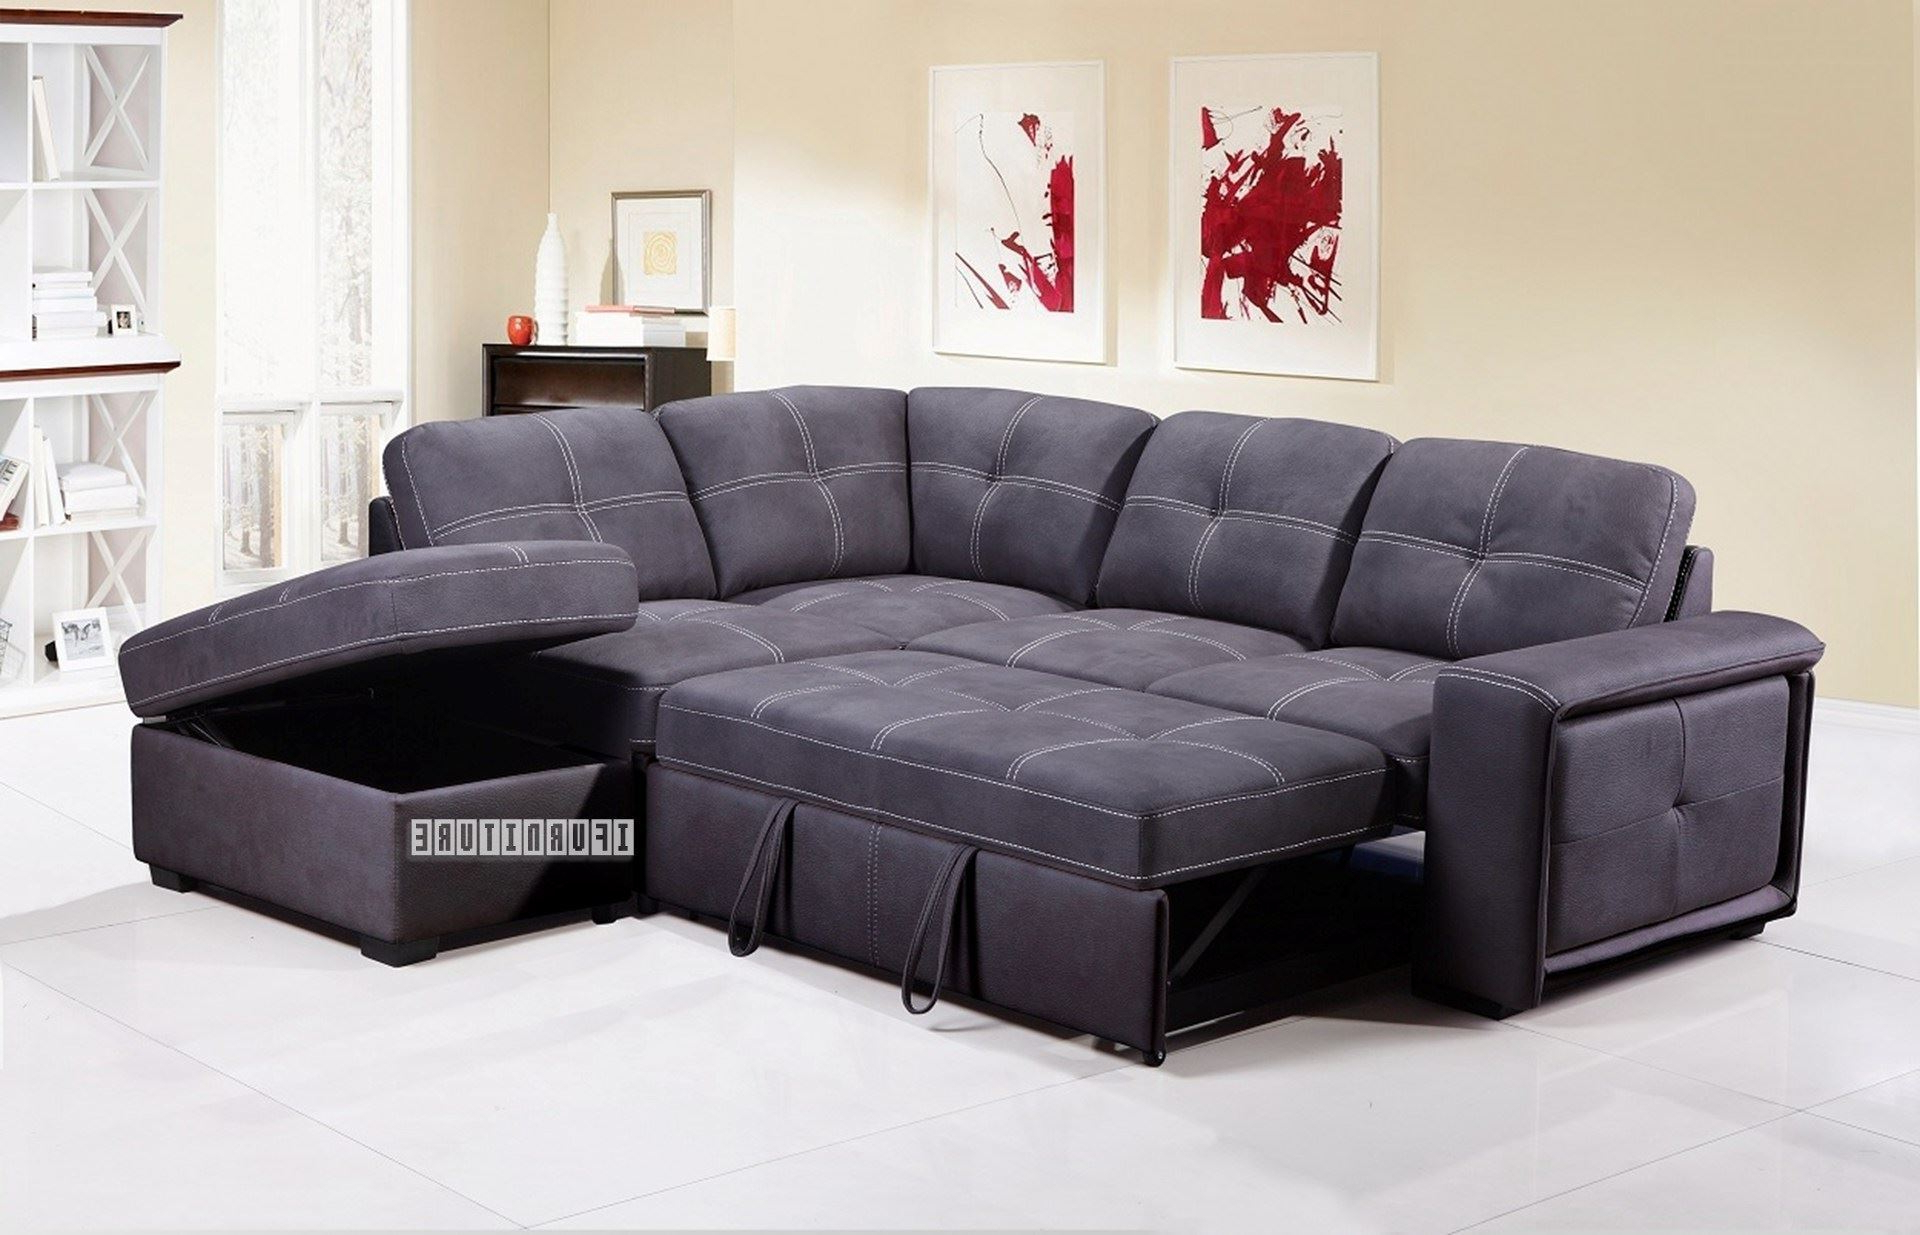 Bellini Sectional Sofa Bed With Storage *Grey Inside Favorite Celine Sectional Futon Sofas With Storage Reclining Couch (View 2 of 25)